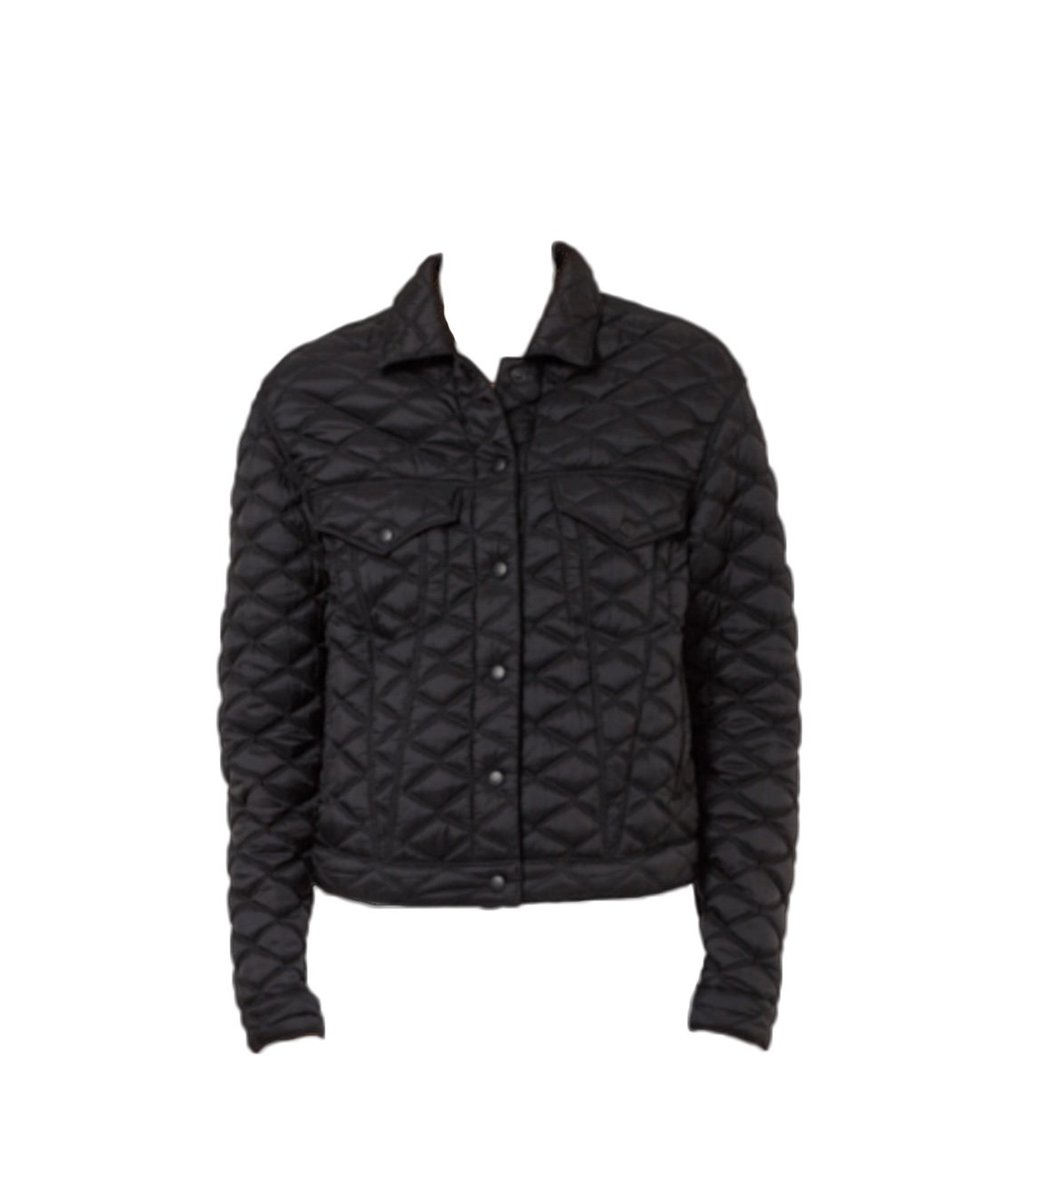 Rta Jackets Erika Quilted Silk Bomber